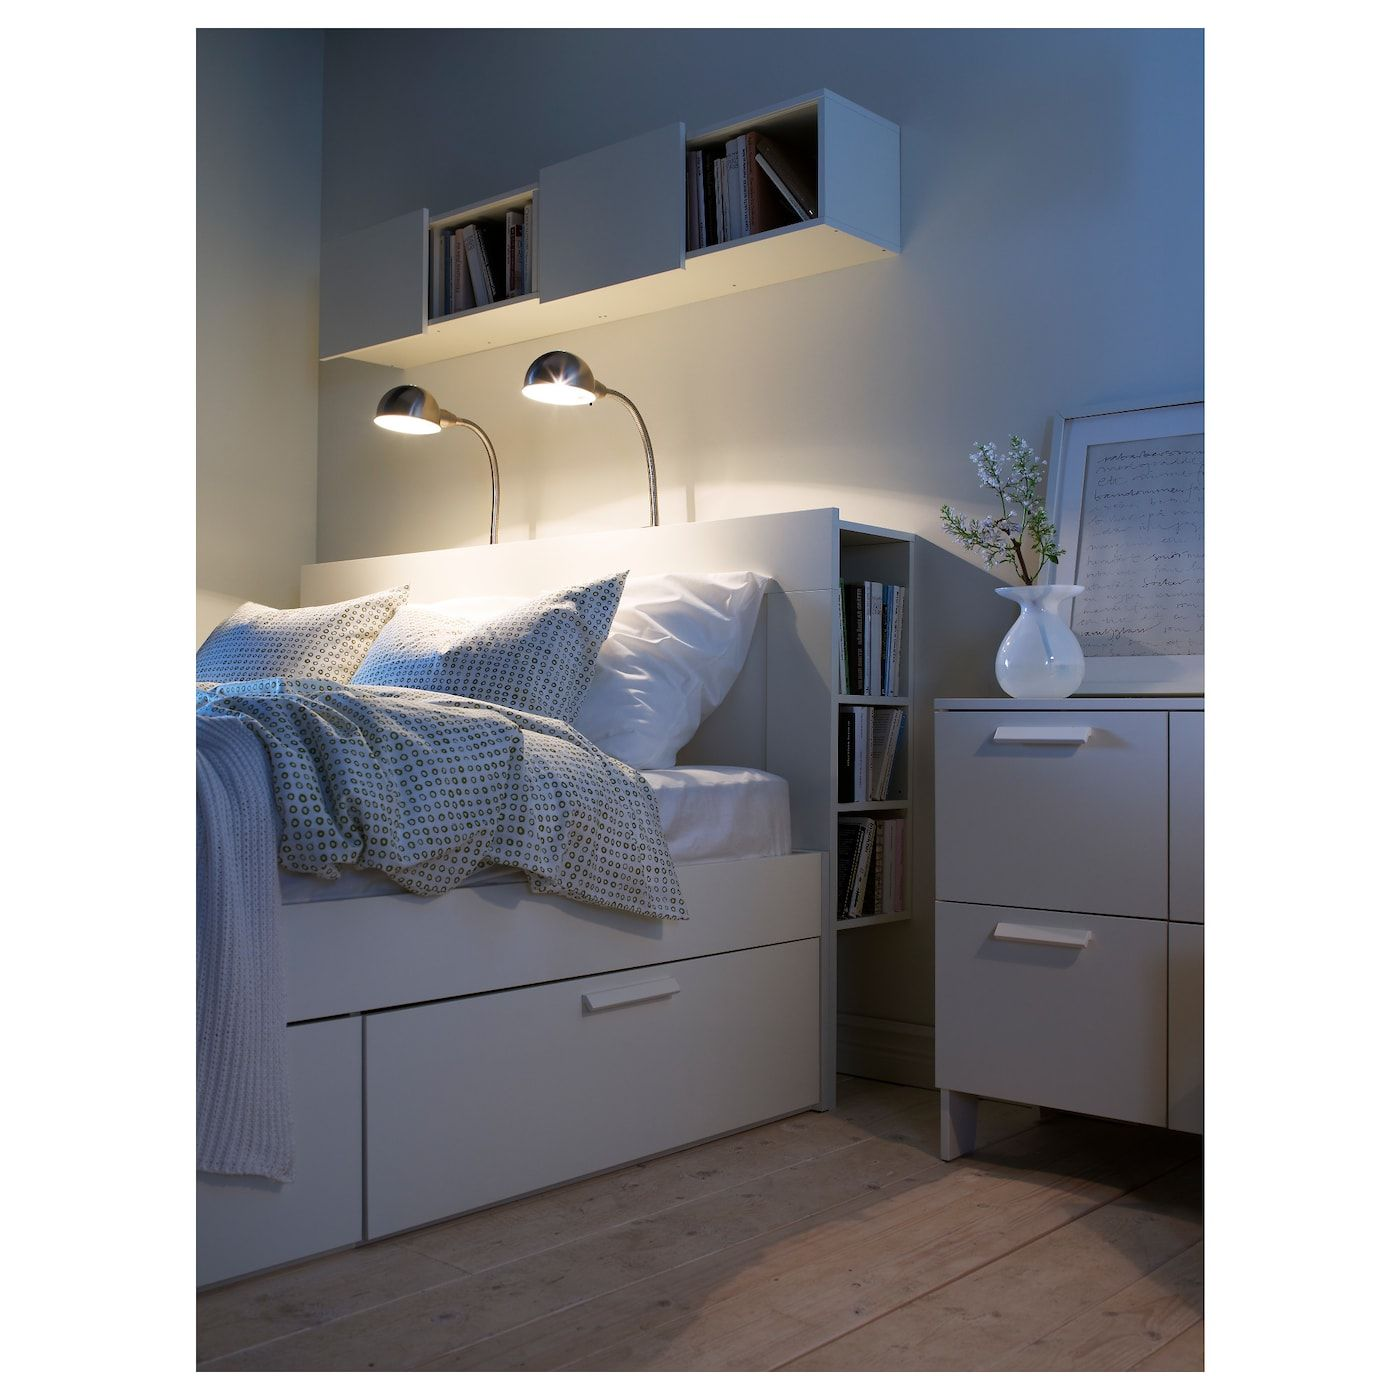 Brimnes Huvudgavel Med Forvaring Vit 140 Cm Ikea Headboard Storage Small Bedroom Storage Tiny Bedroom